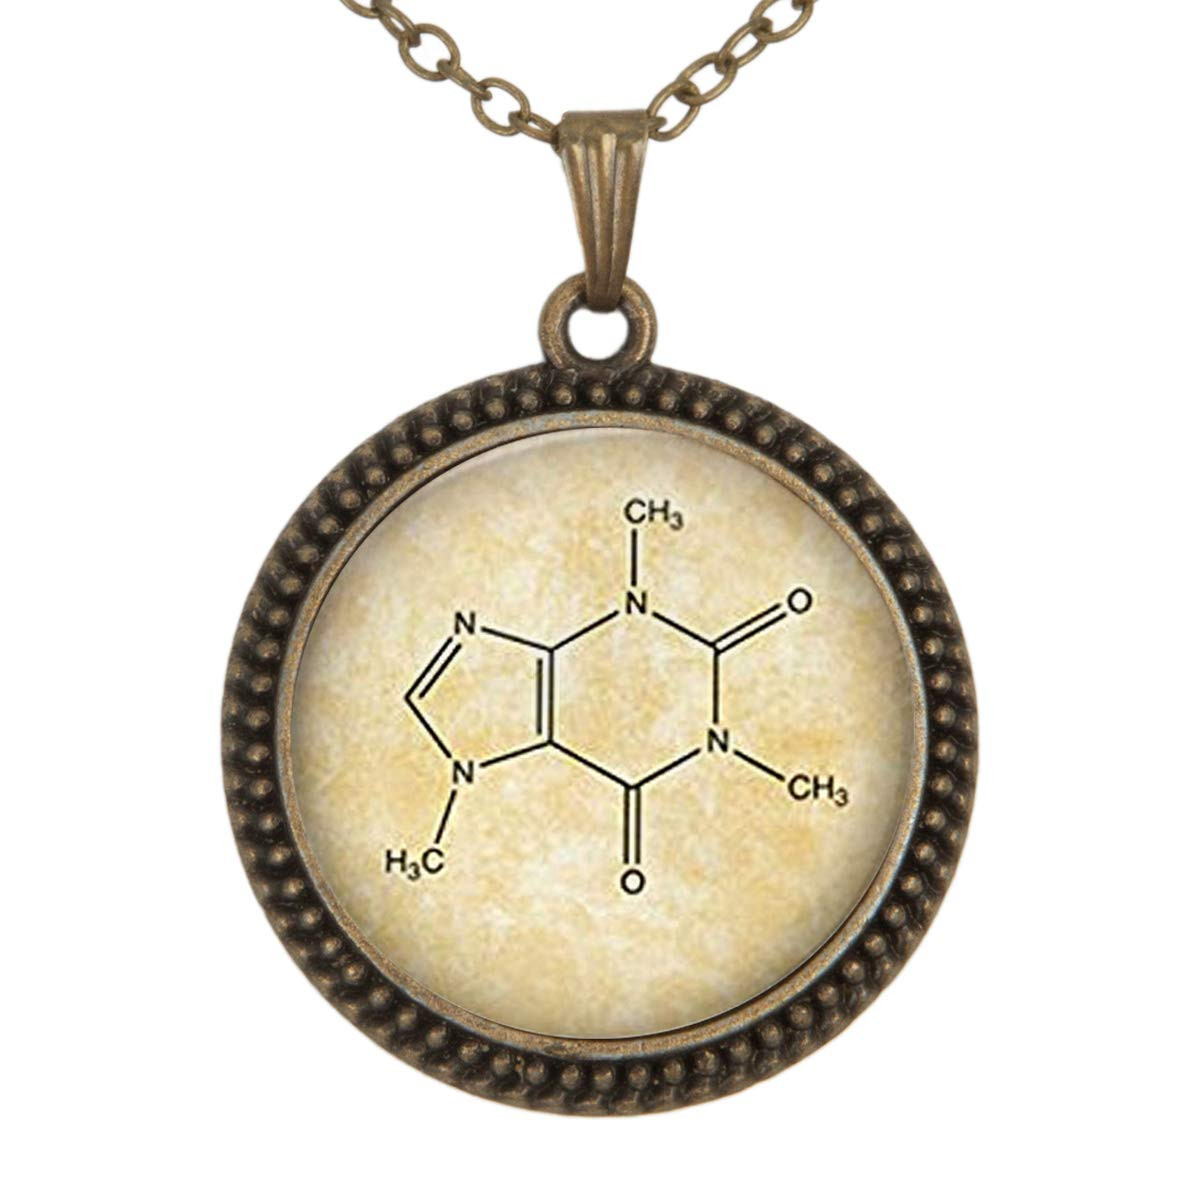 Lightrain Chemical Formula Pendant Necklace Vintage Bronze Chain Statement Necklace Handmade Jewelry Gifts